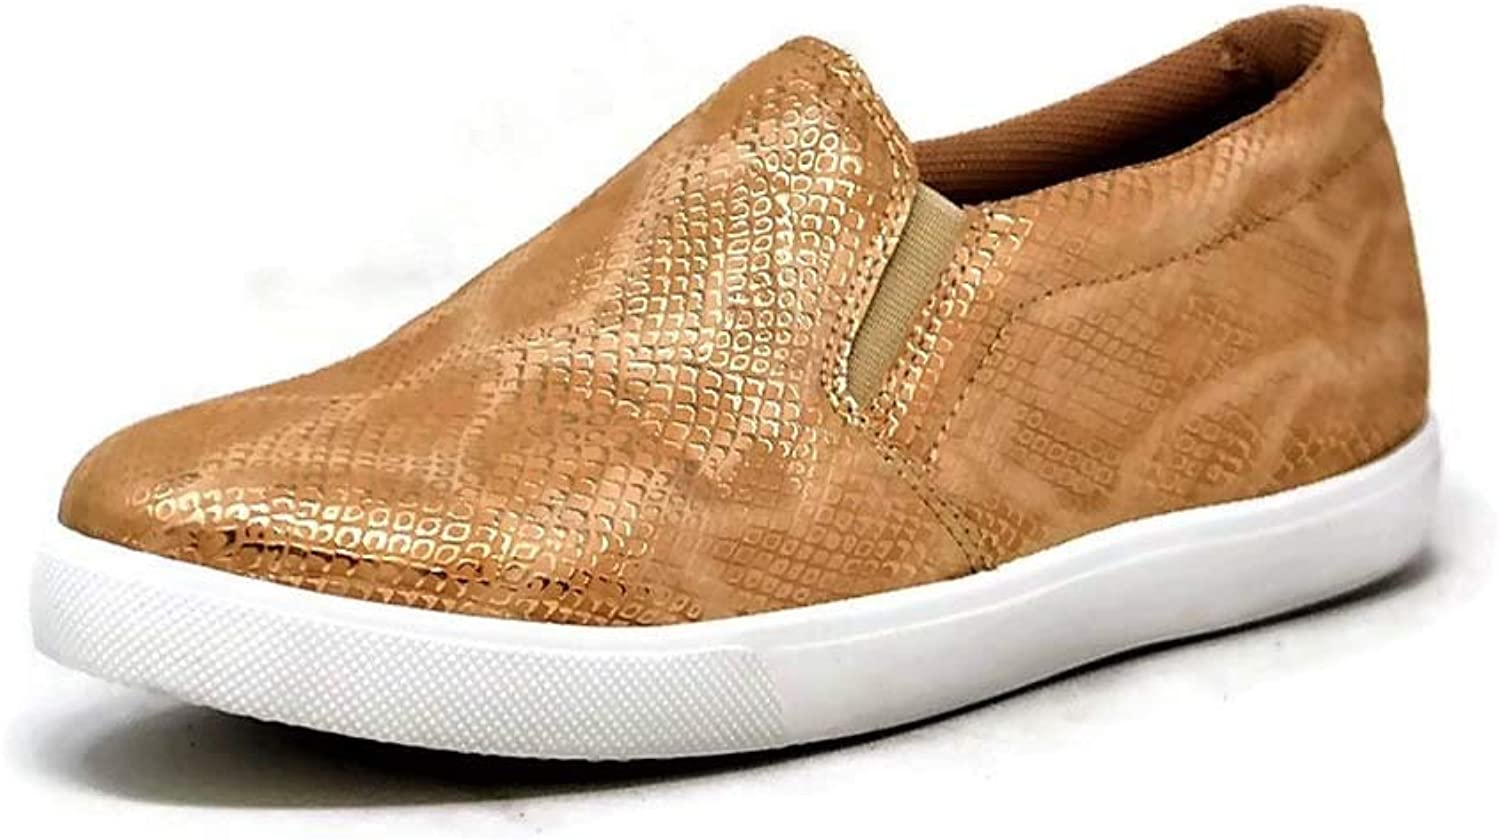 Mata shoes Women's Fashion Sneakers Round Toe Casual Loafer Slip on (color   gold, Size   10 M US)